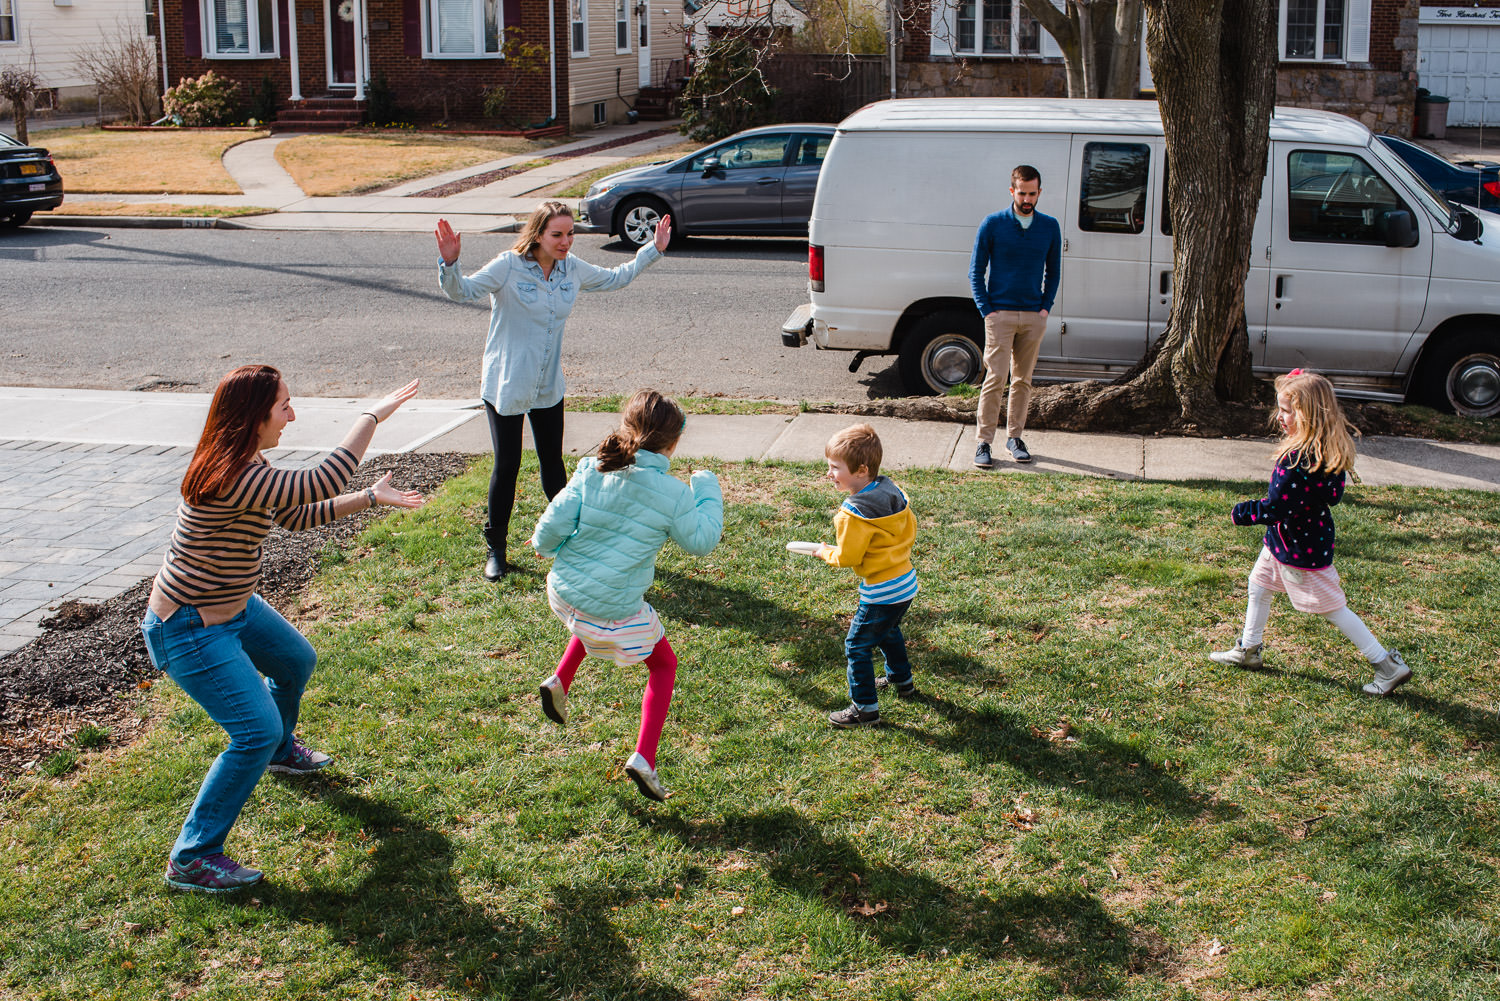 Kids play frisbee in the front yard.